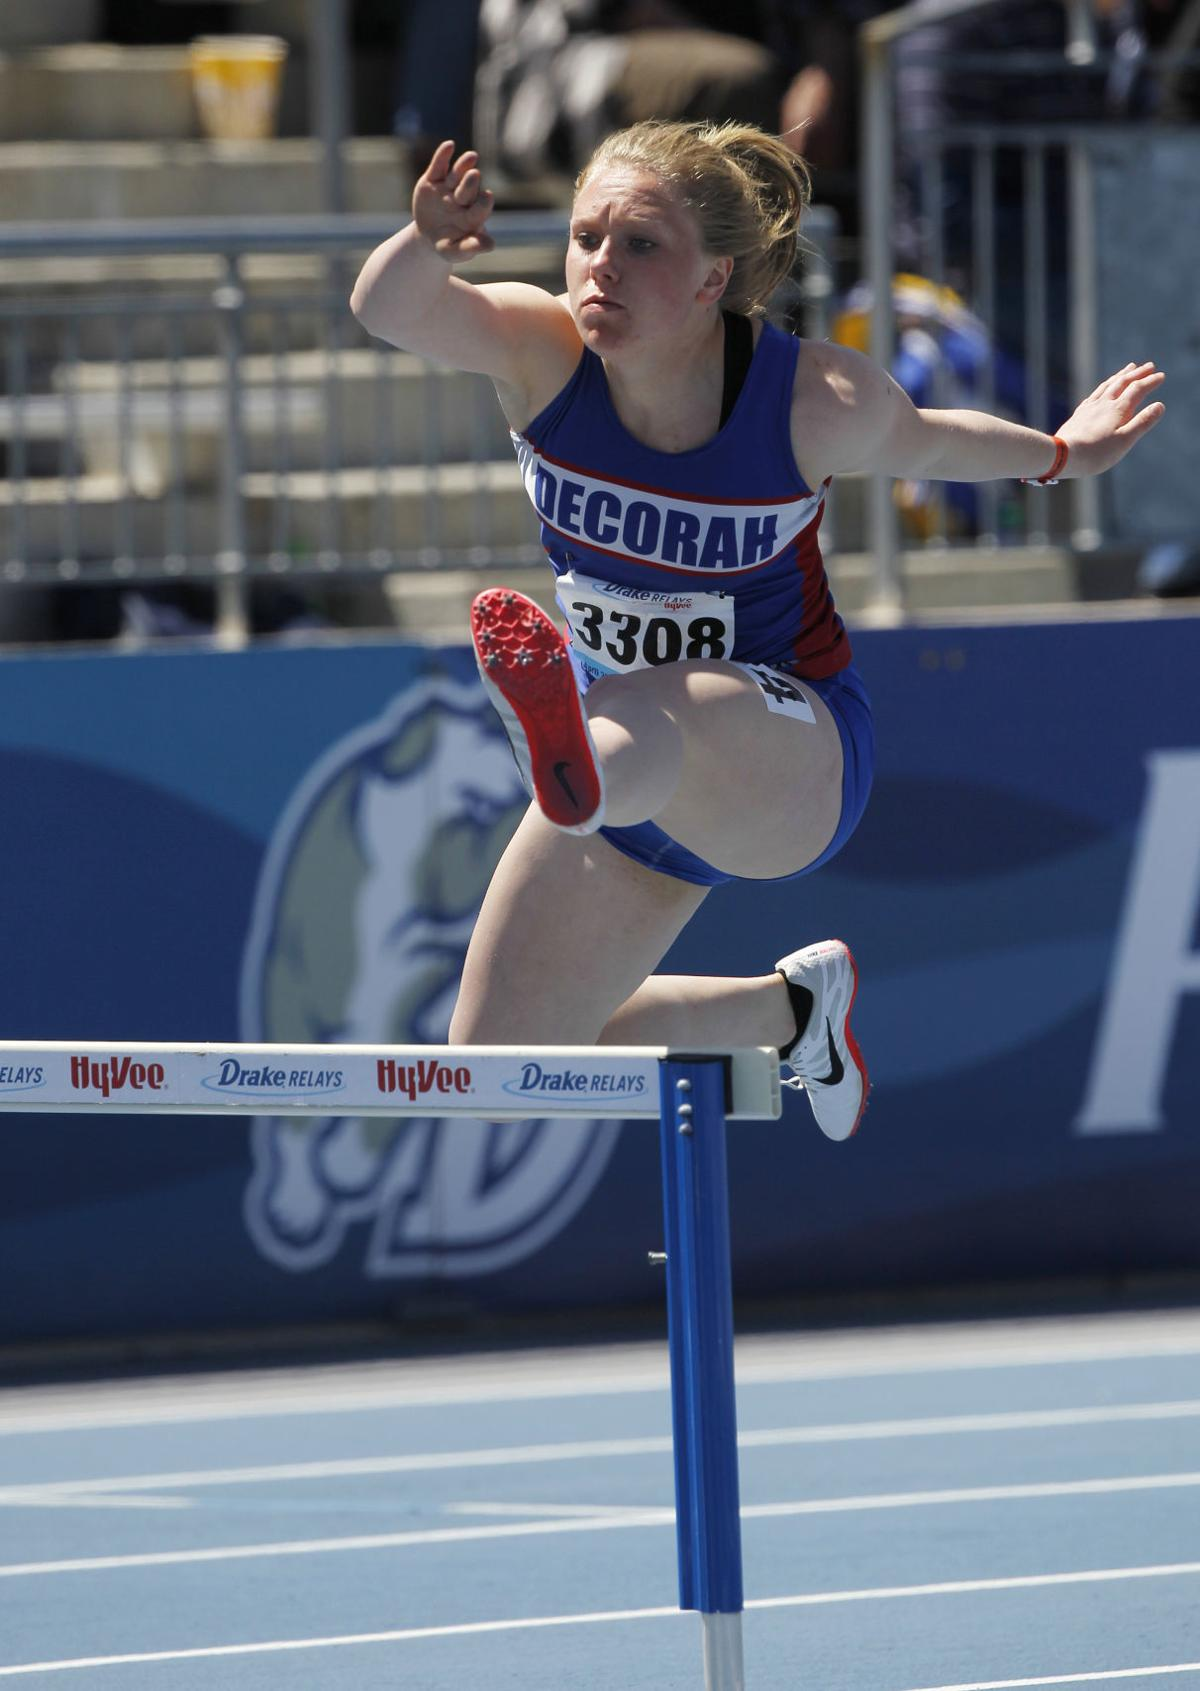 042818mp-Drake-Relays-Girls-400m-hurdles